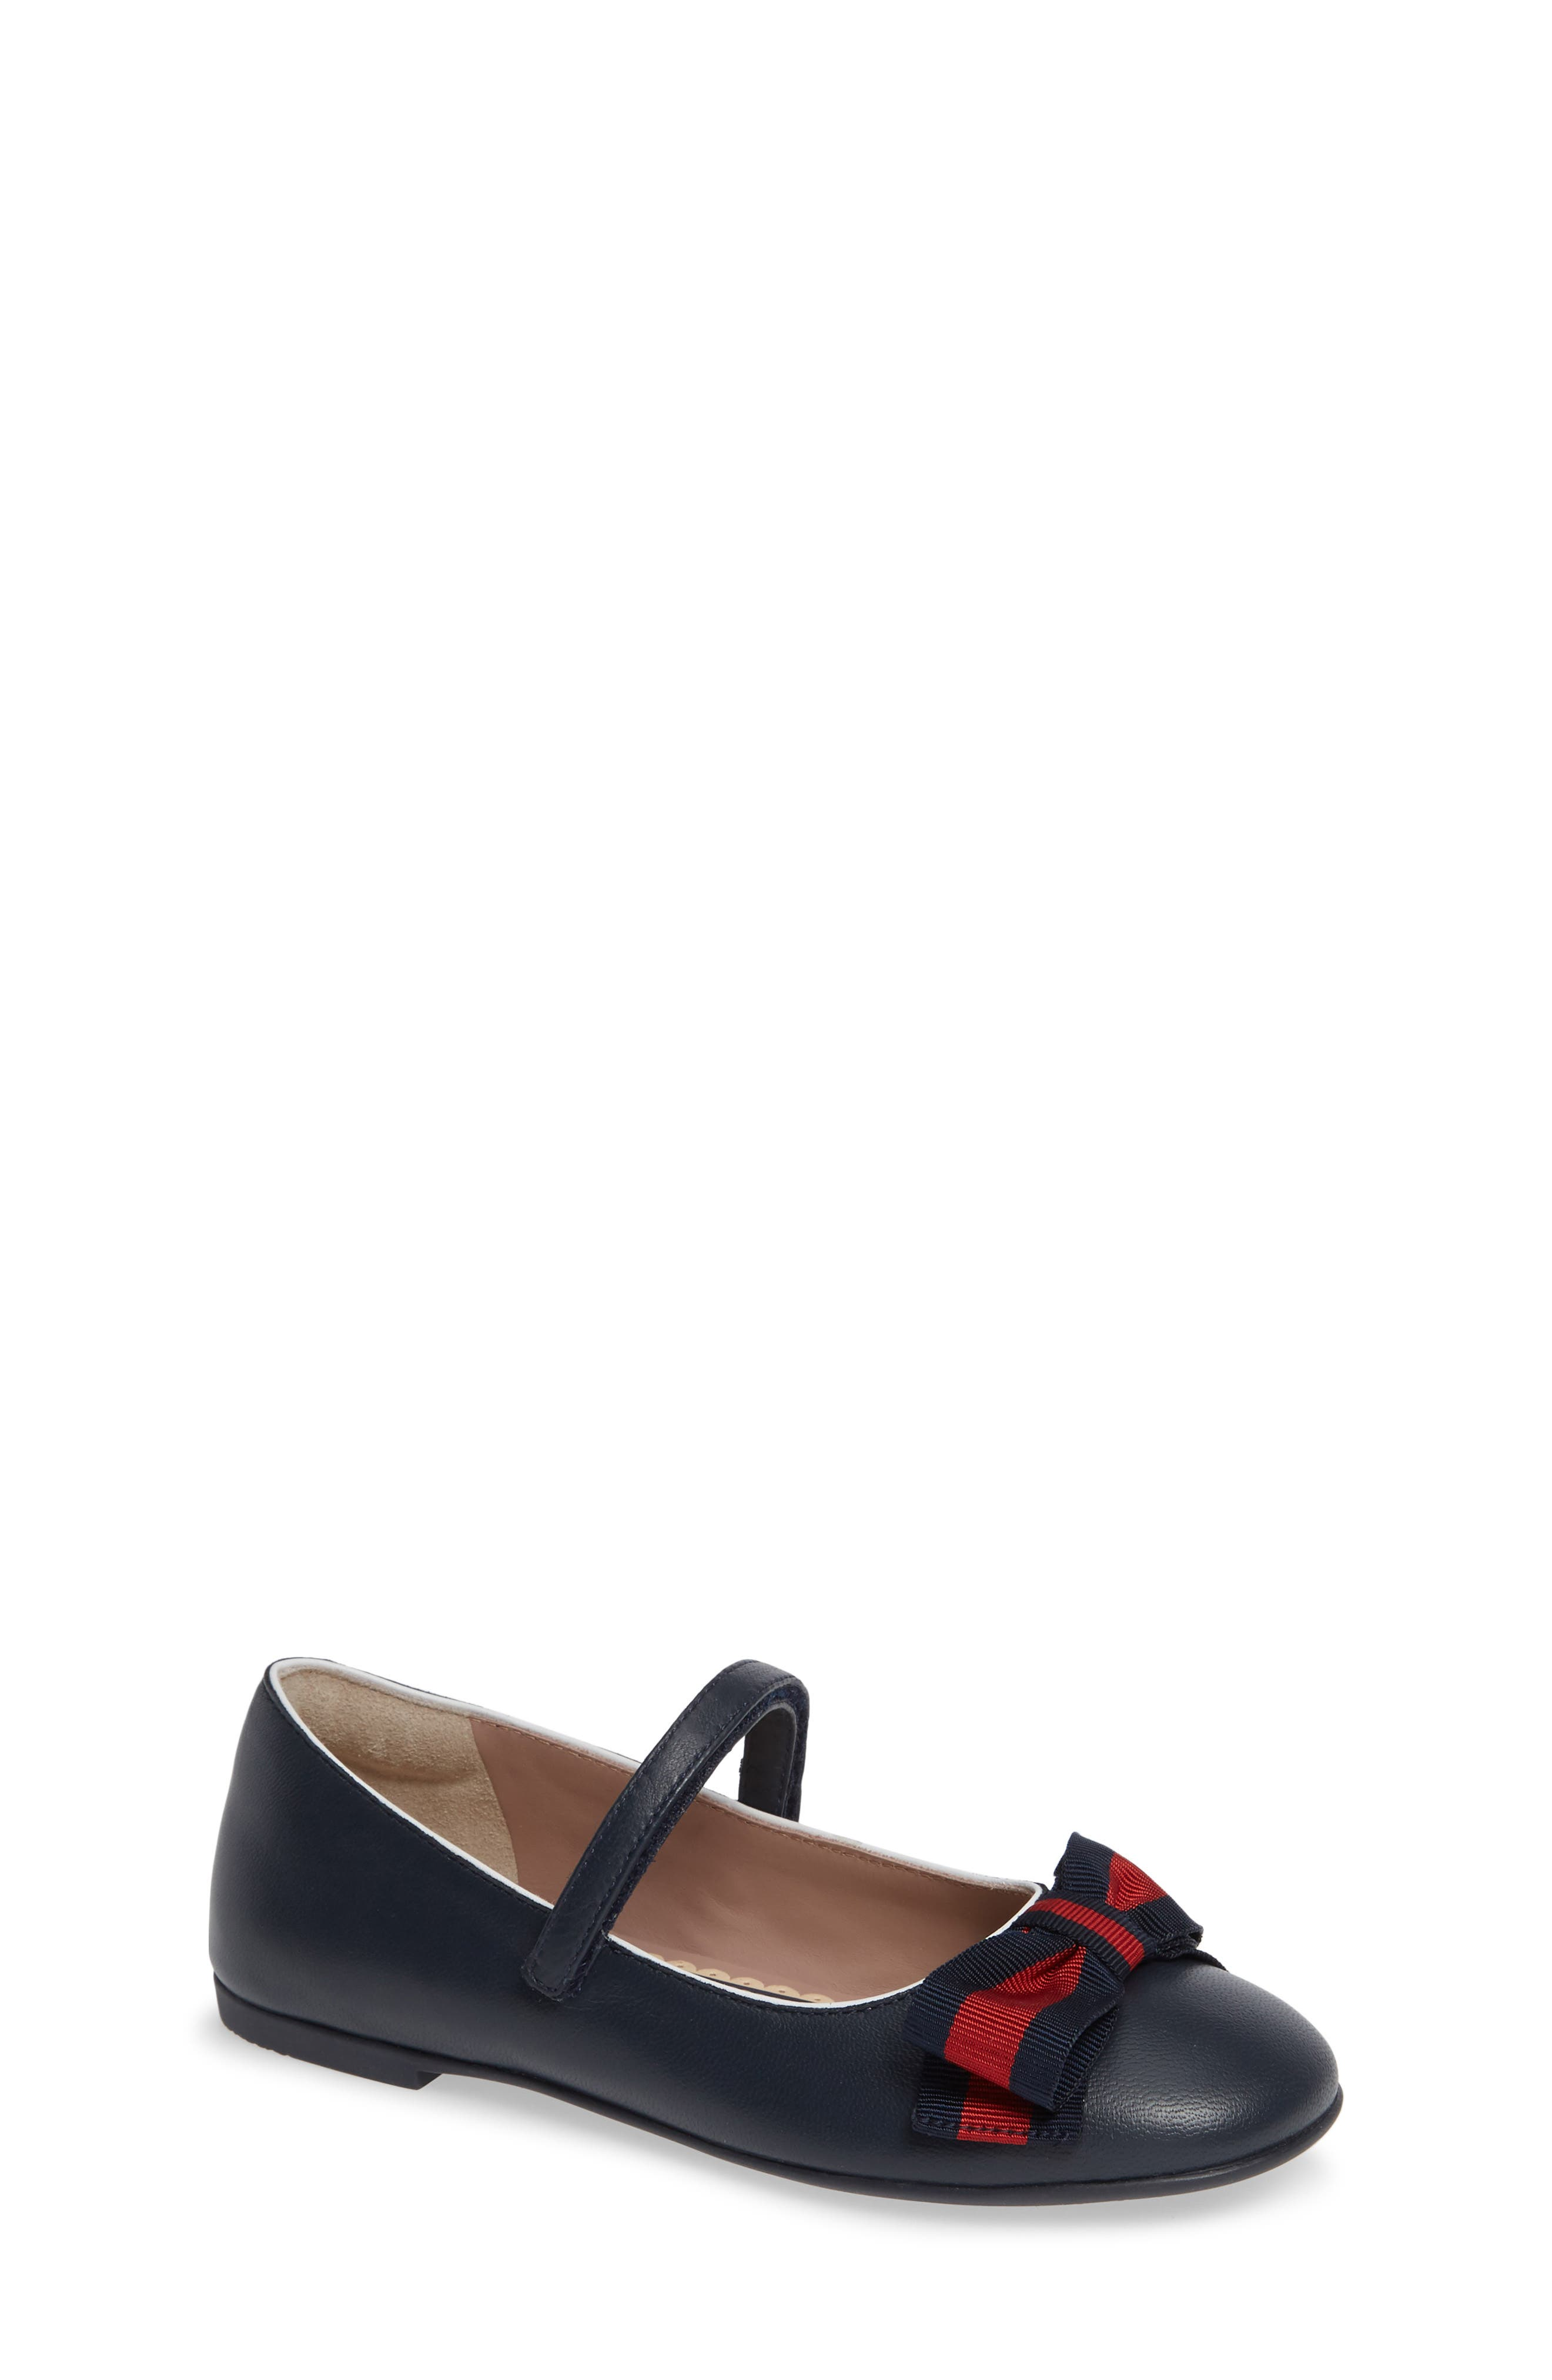 Cindy Mary Jane Flat,                         Main,                         color, BLUE/ GREAT WHITE/ RED